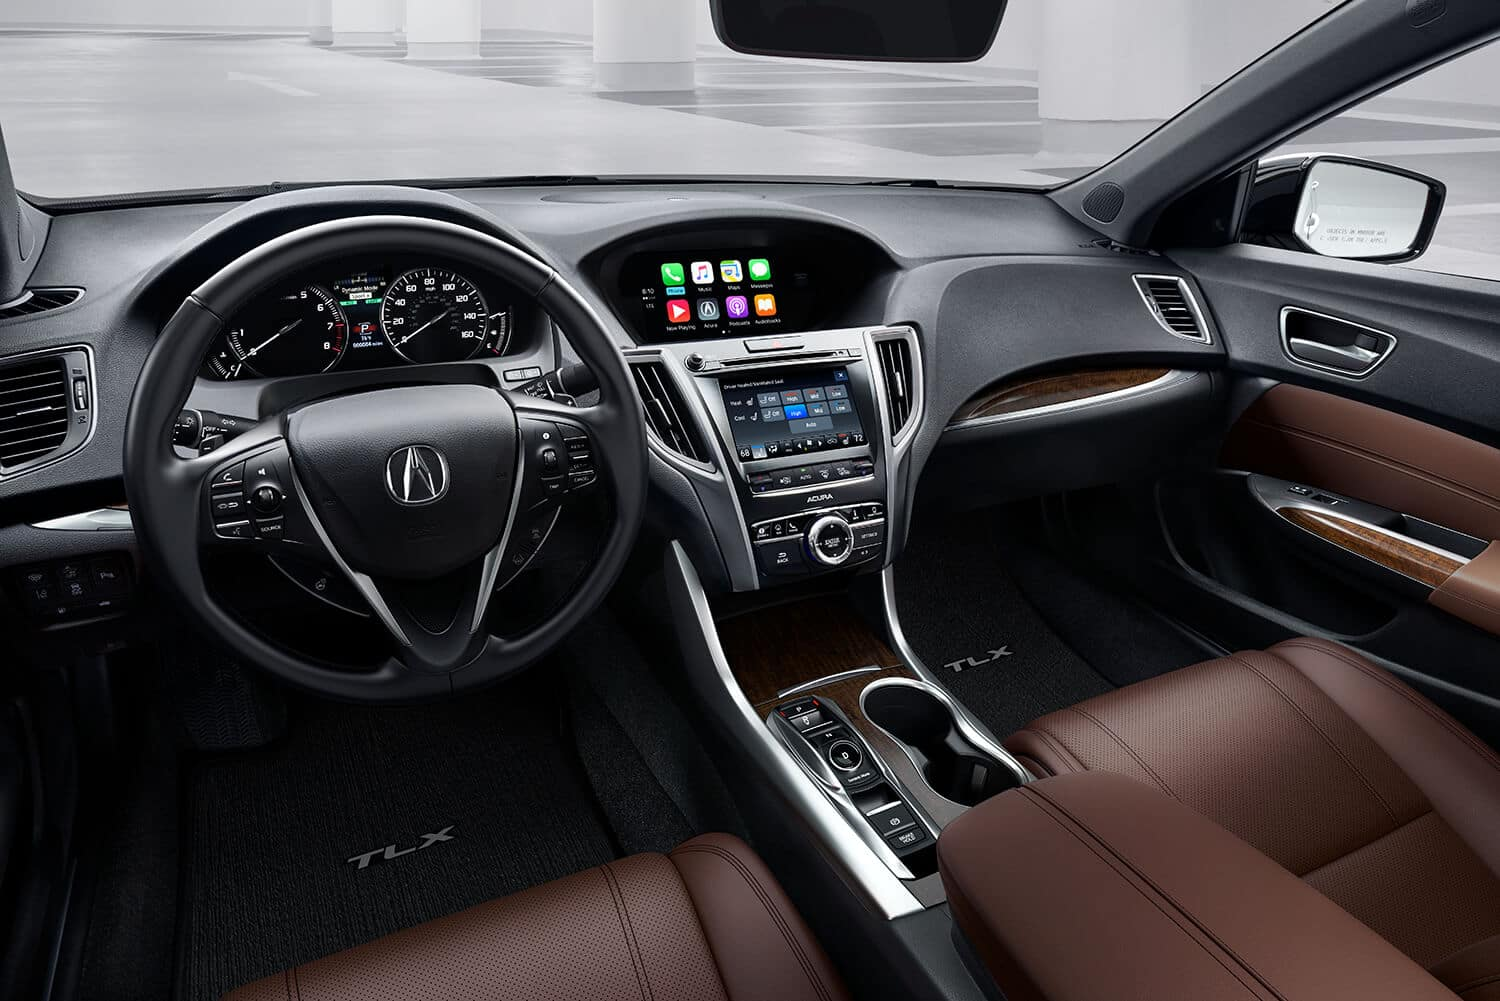 2020 Acura TLX Interior Cockpit Overview